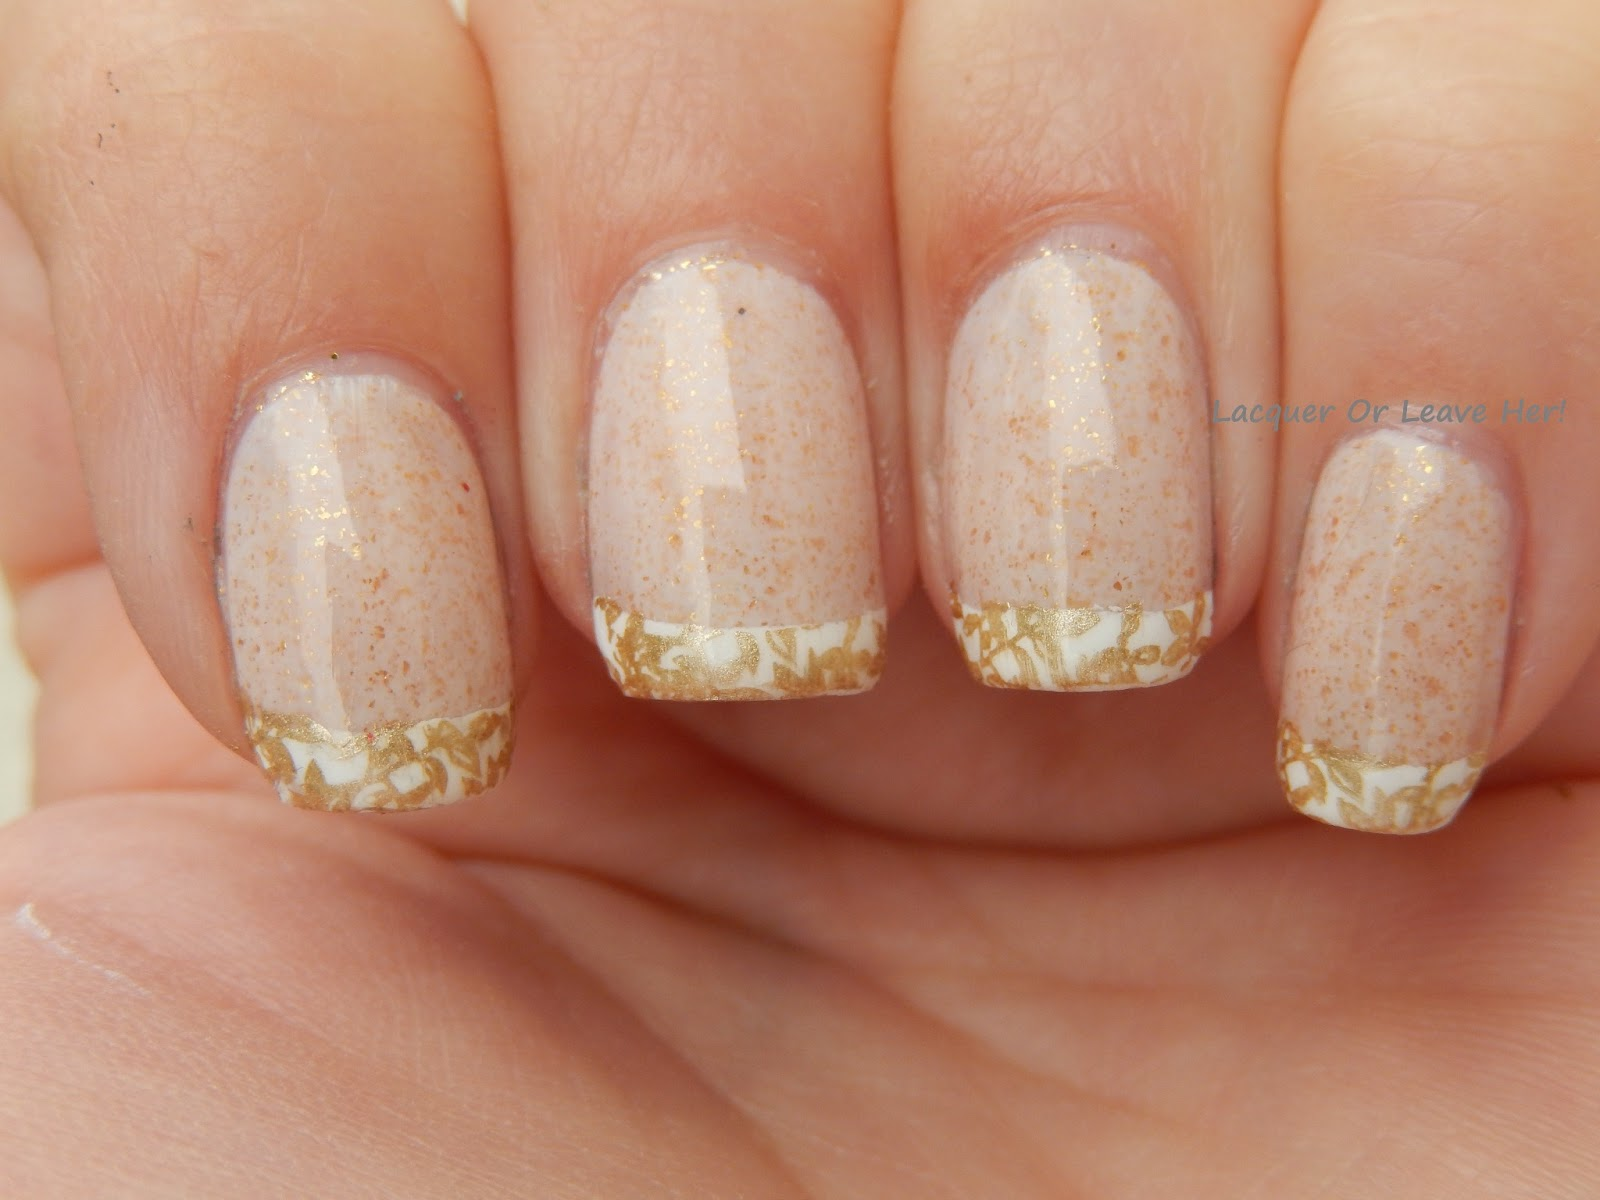 Lacquer or Leave Her!: Before & After: Stamped French Manicure